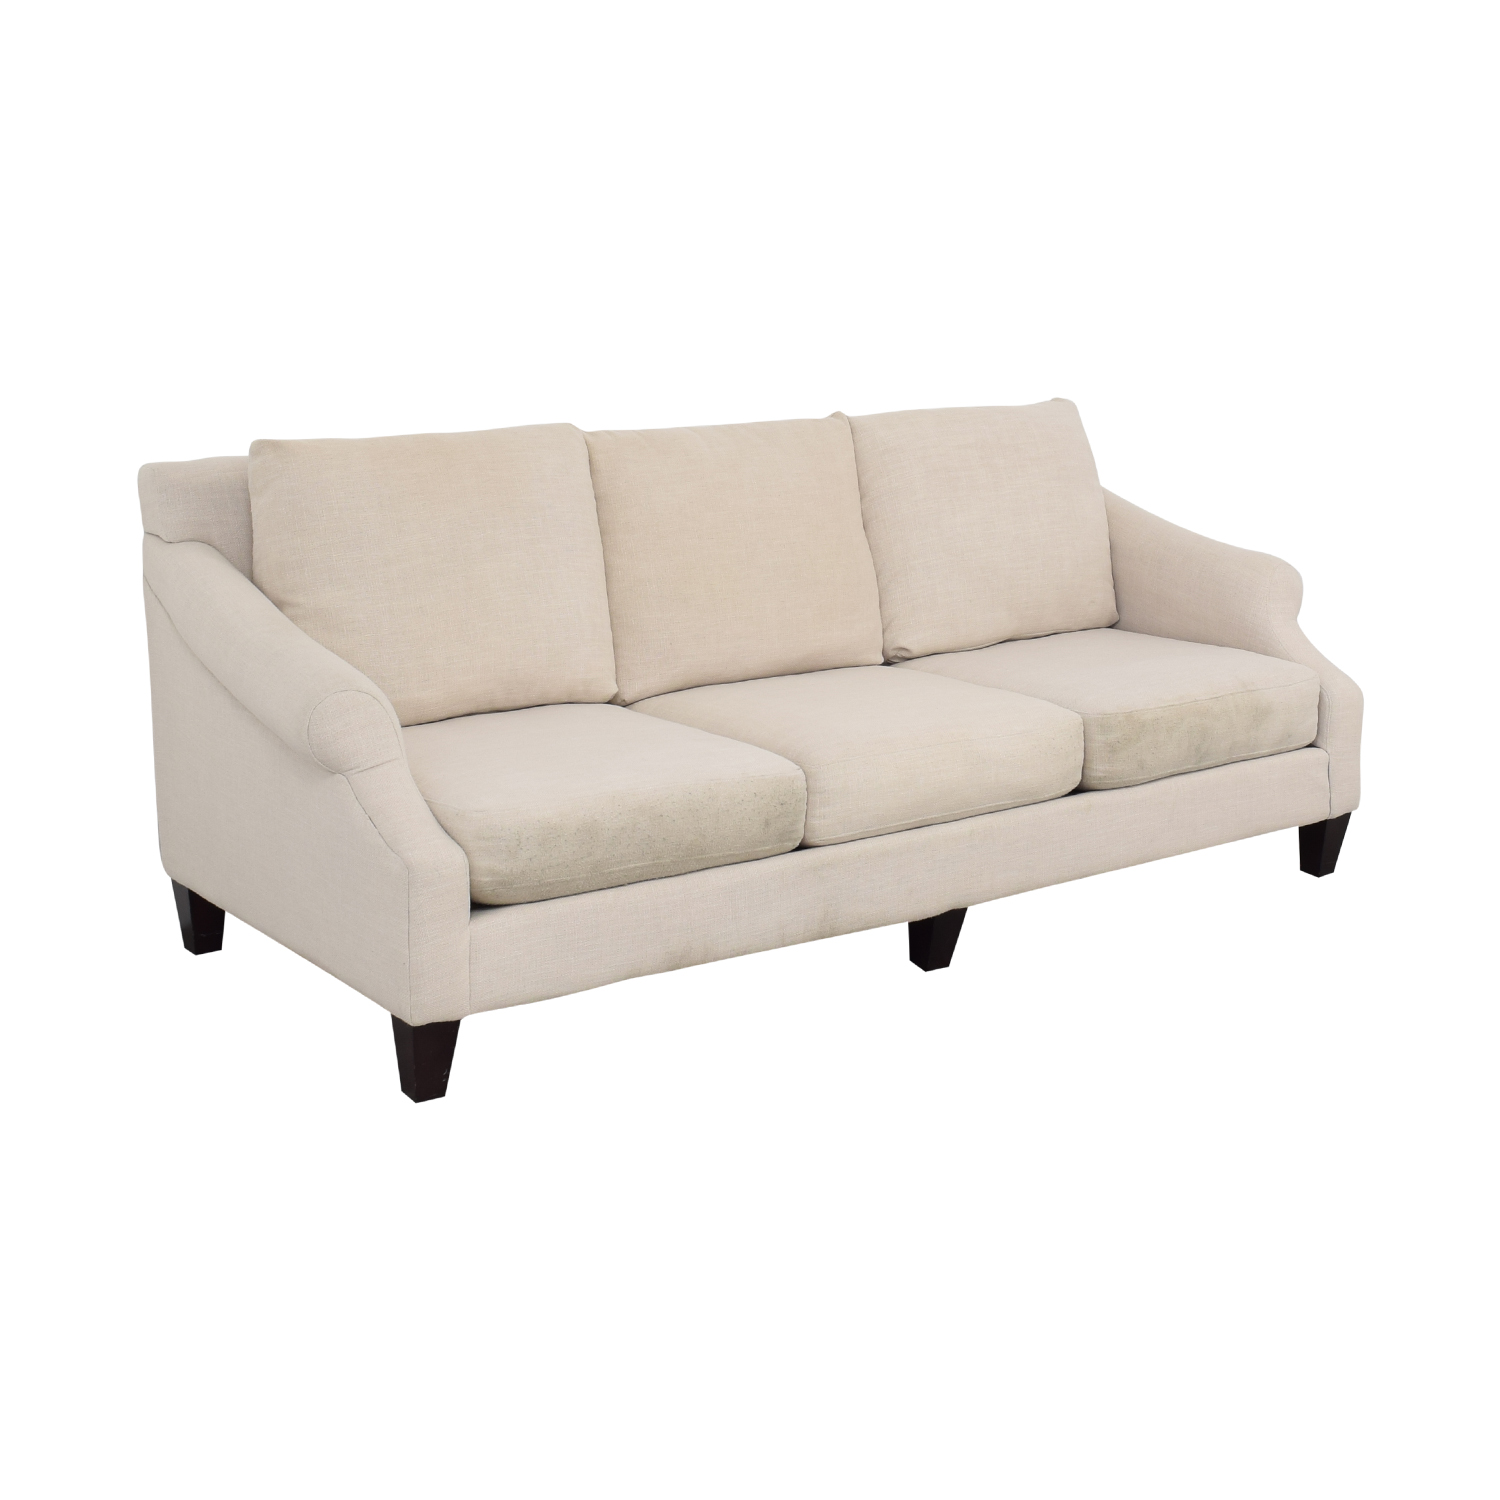 Bauhaus Furniture Bauhaus Furniture Three Seater  Sofa price